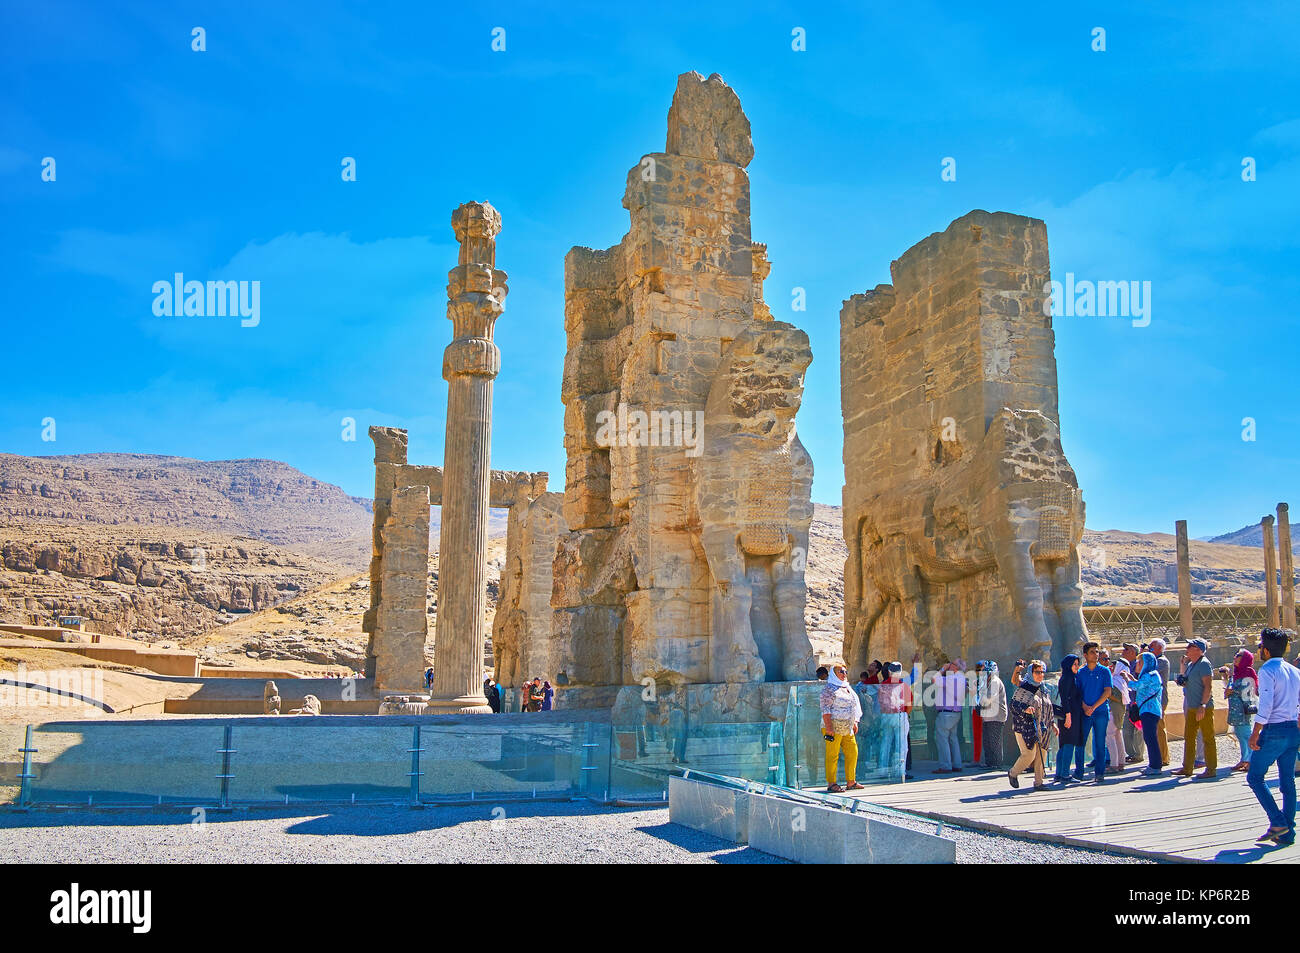 PERSEPOLIS, IRAN - OCTOBER 13, 2017: The numerous tourists next to the All Nations Gate (Xerxes Gate) in Persepolis - Stock Image